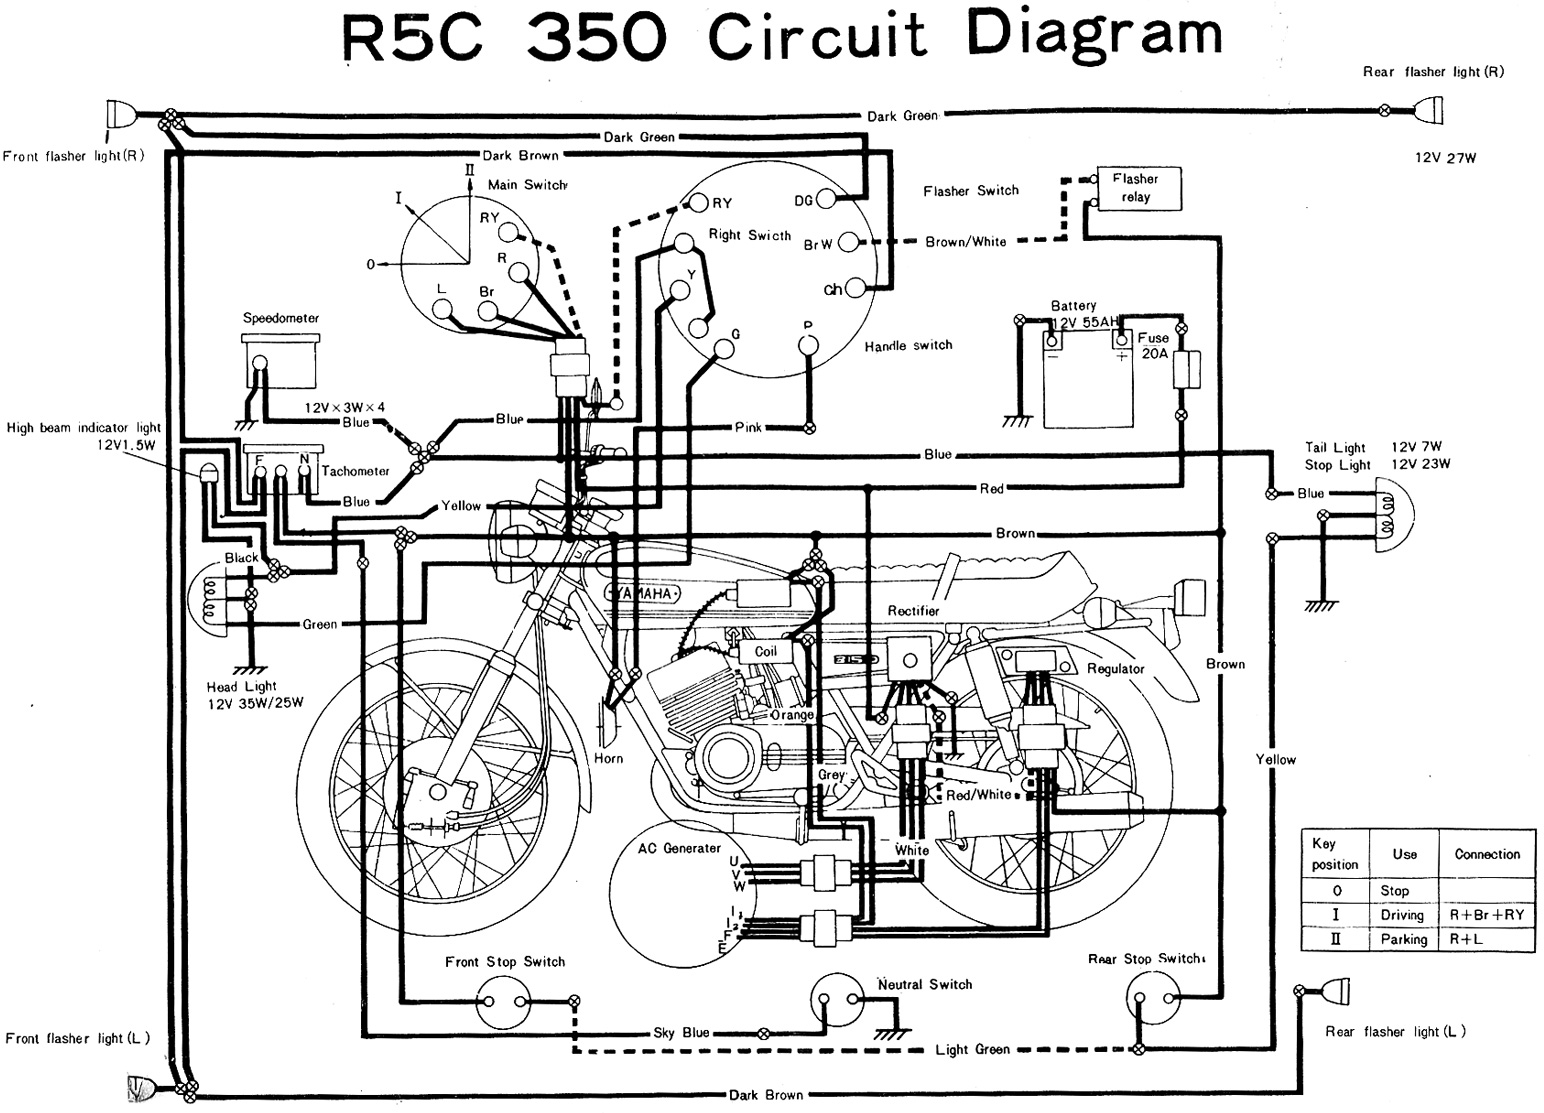 Motorcycle Wiring Diagrams 81 Suzuki 650 Diagram R5c 350